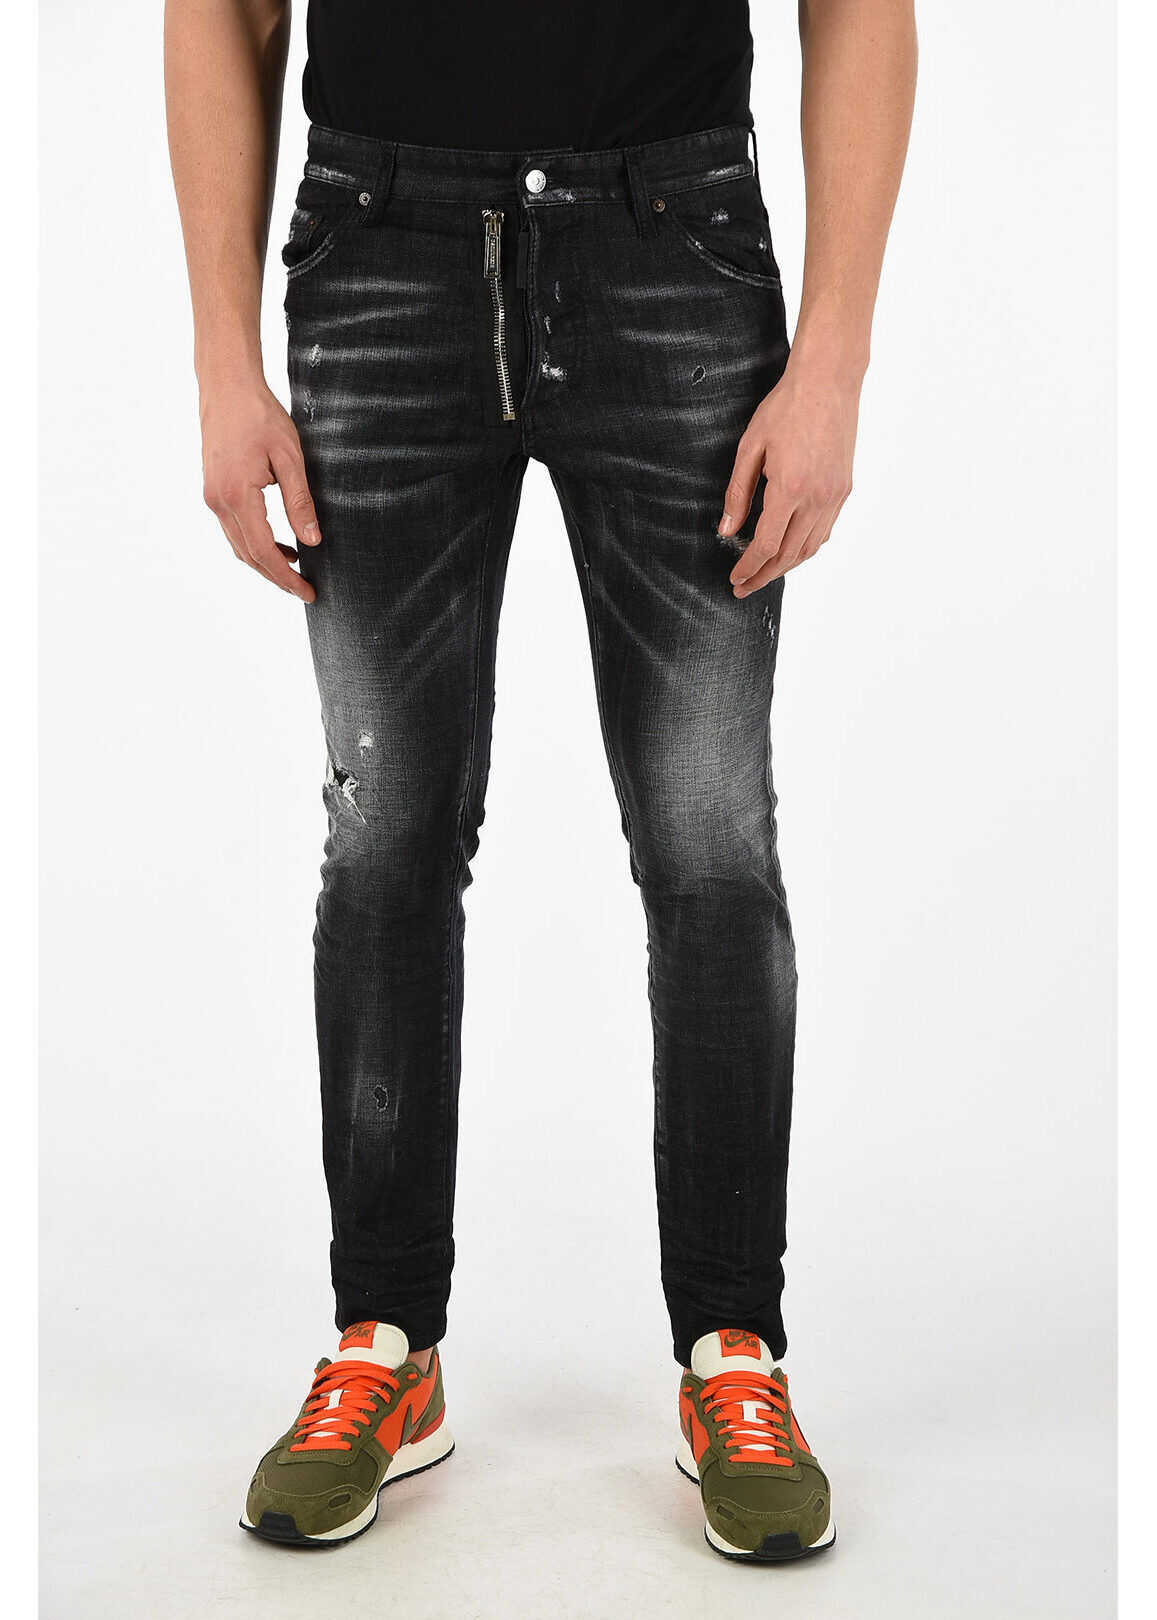 16cm Stone Washed Vintage Effect COOL GUY Jeans thumbnail